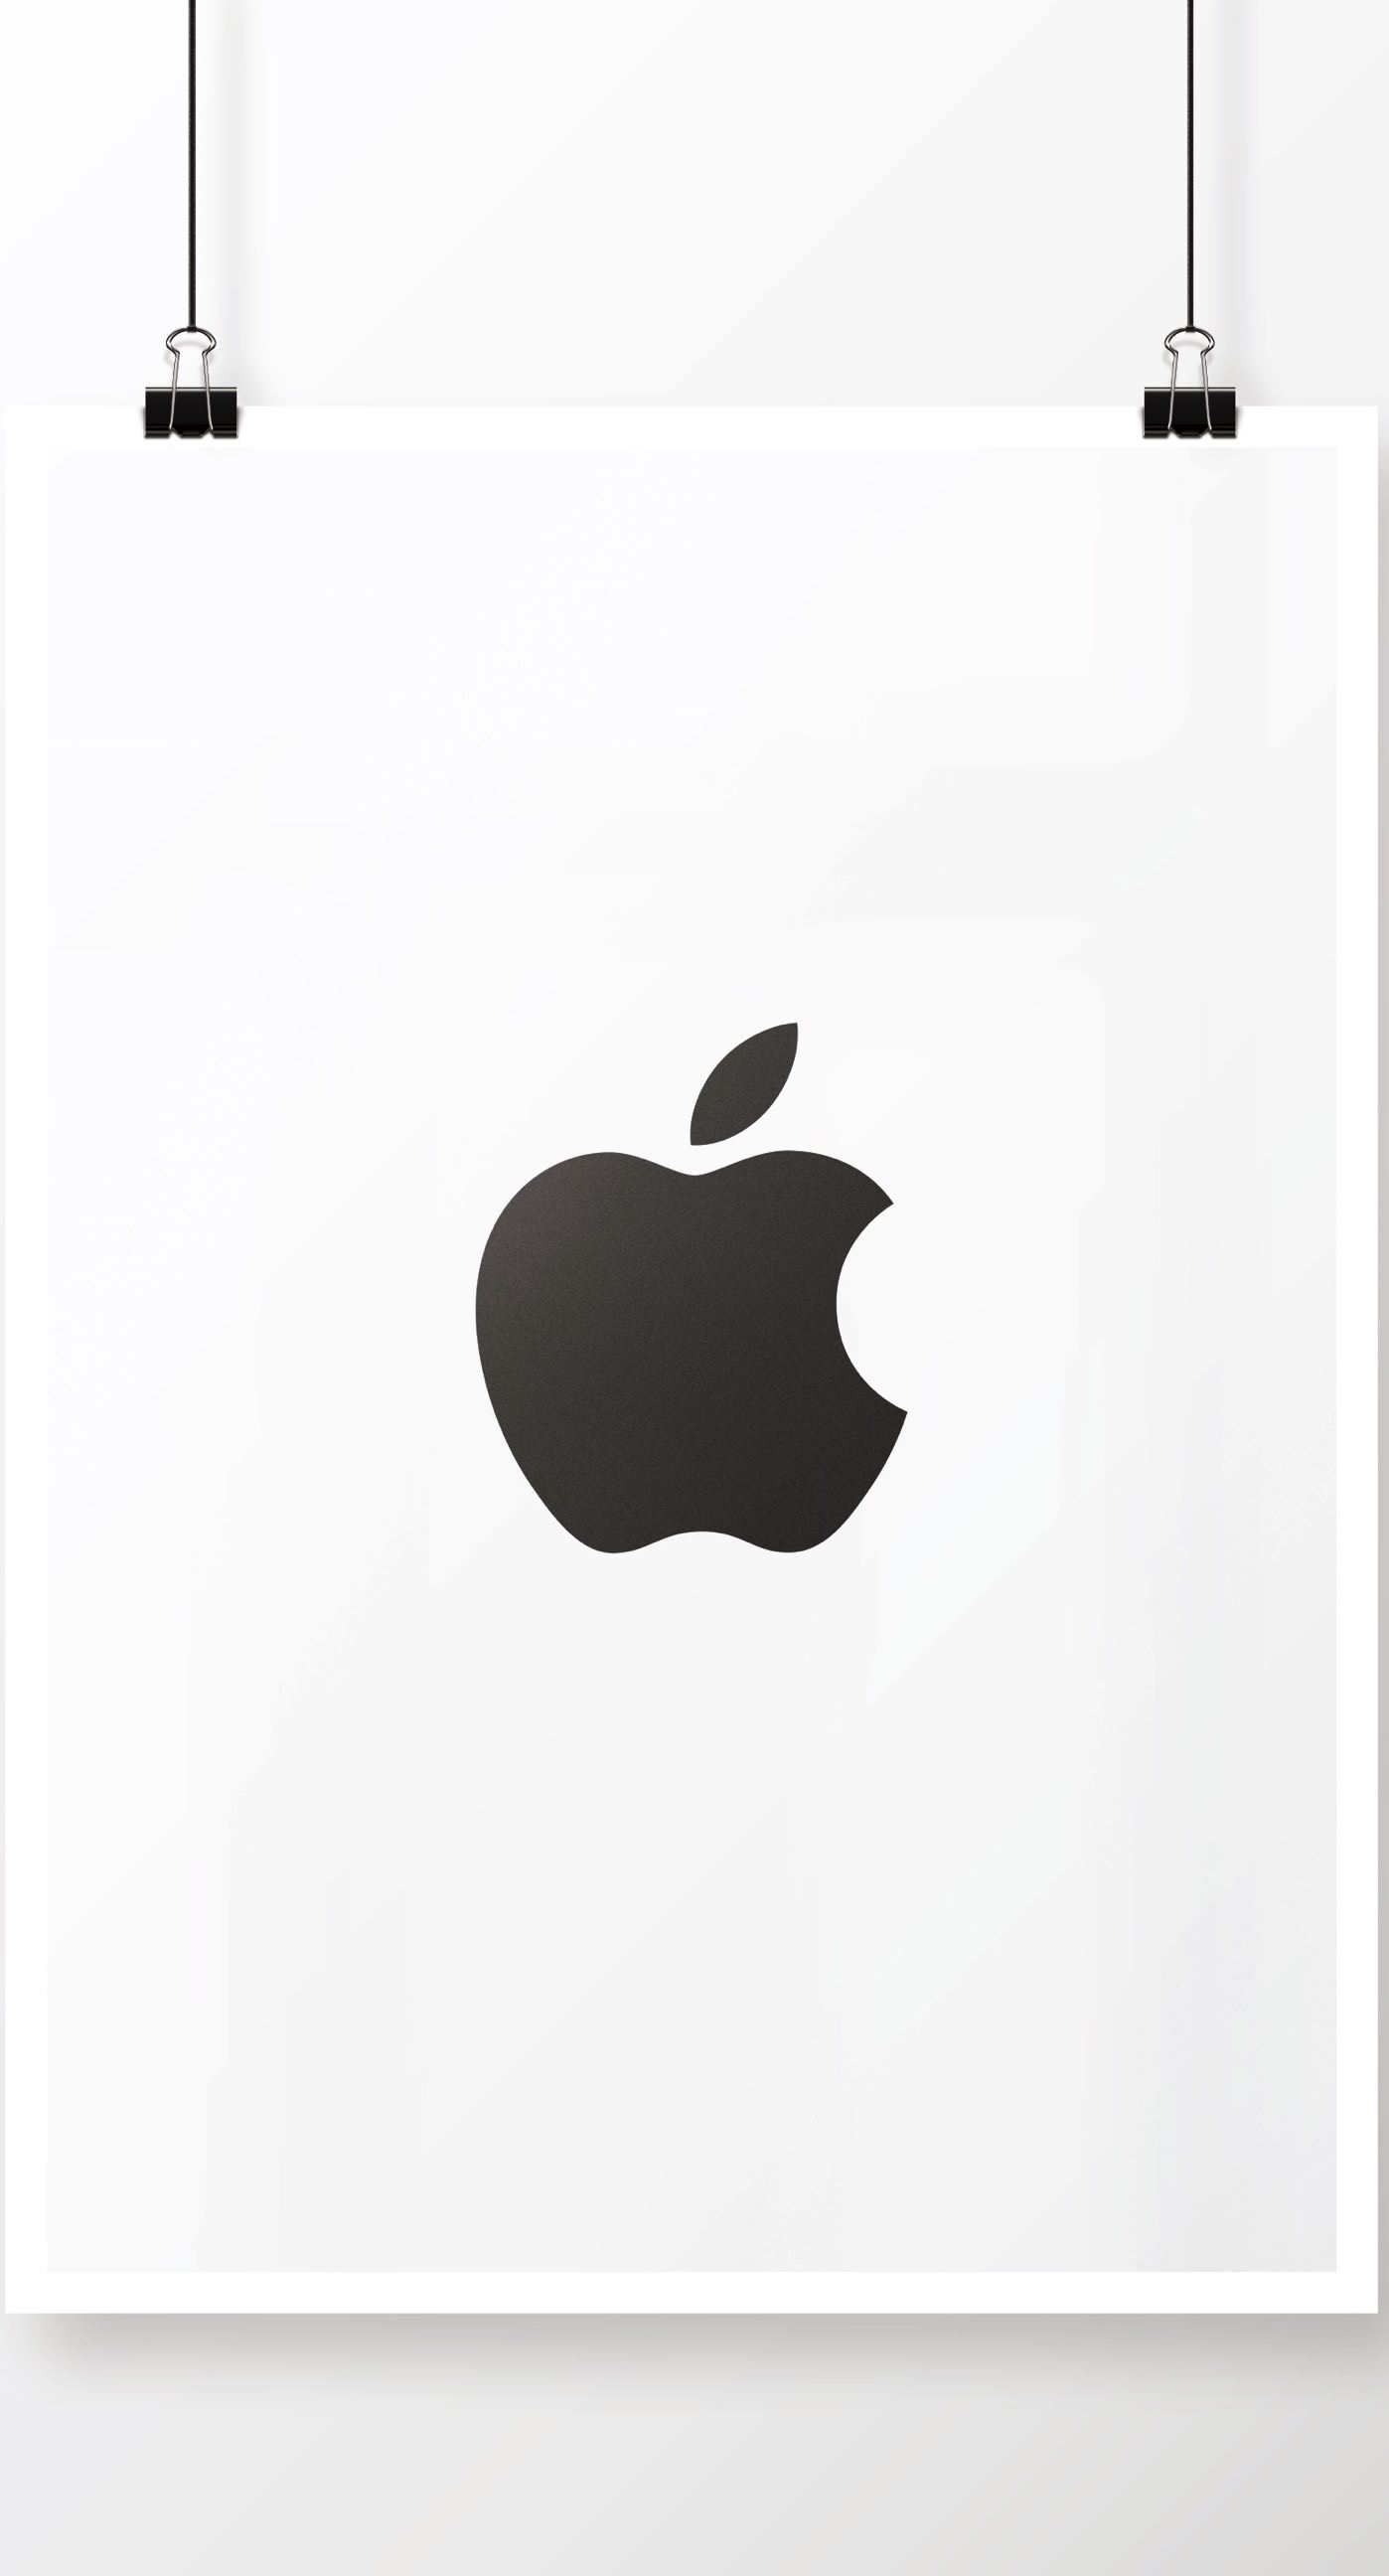 Cool Black And White Posters Apple Logo Black And White Cool Poster Wallpaper Sc